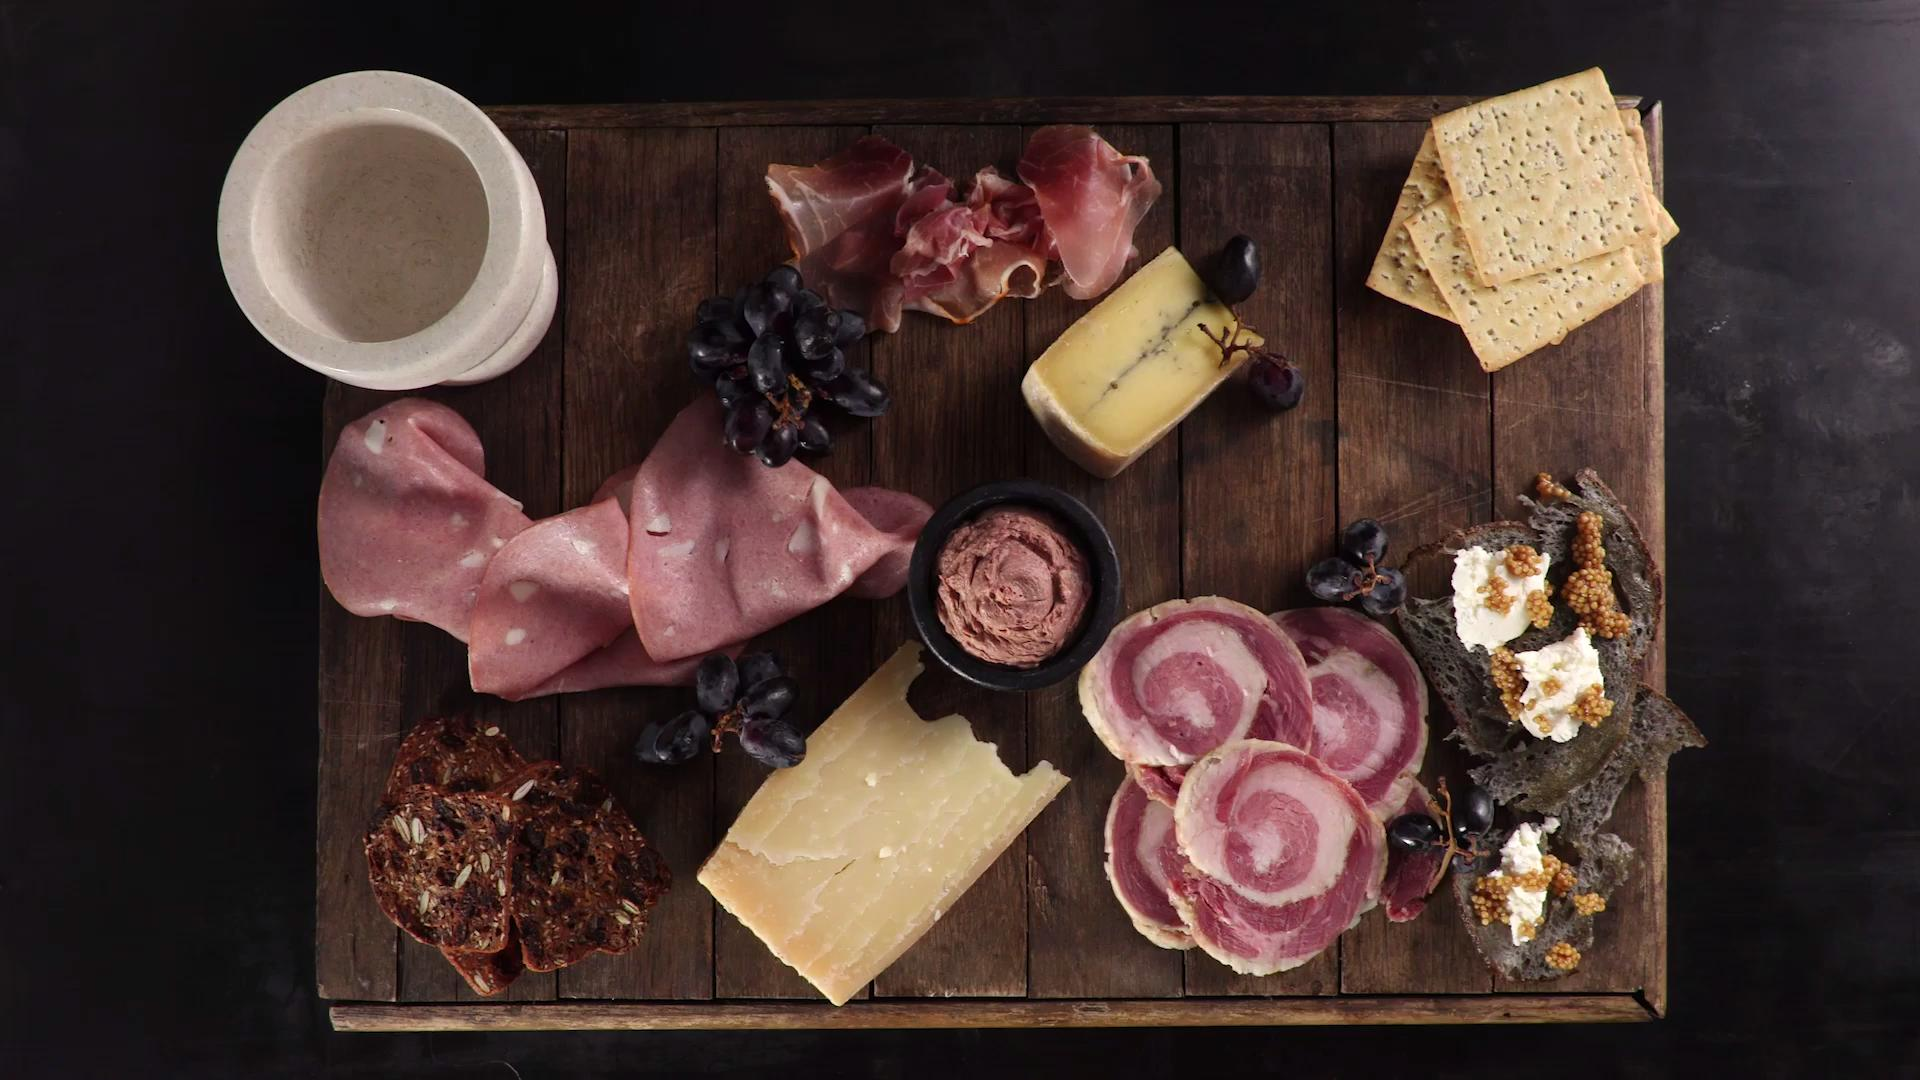 How to Assemble a Charcuterie Board